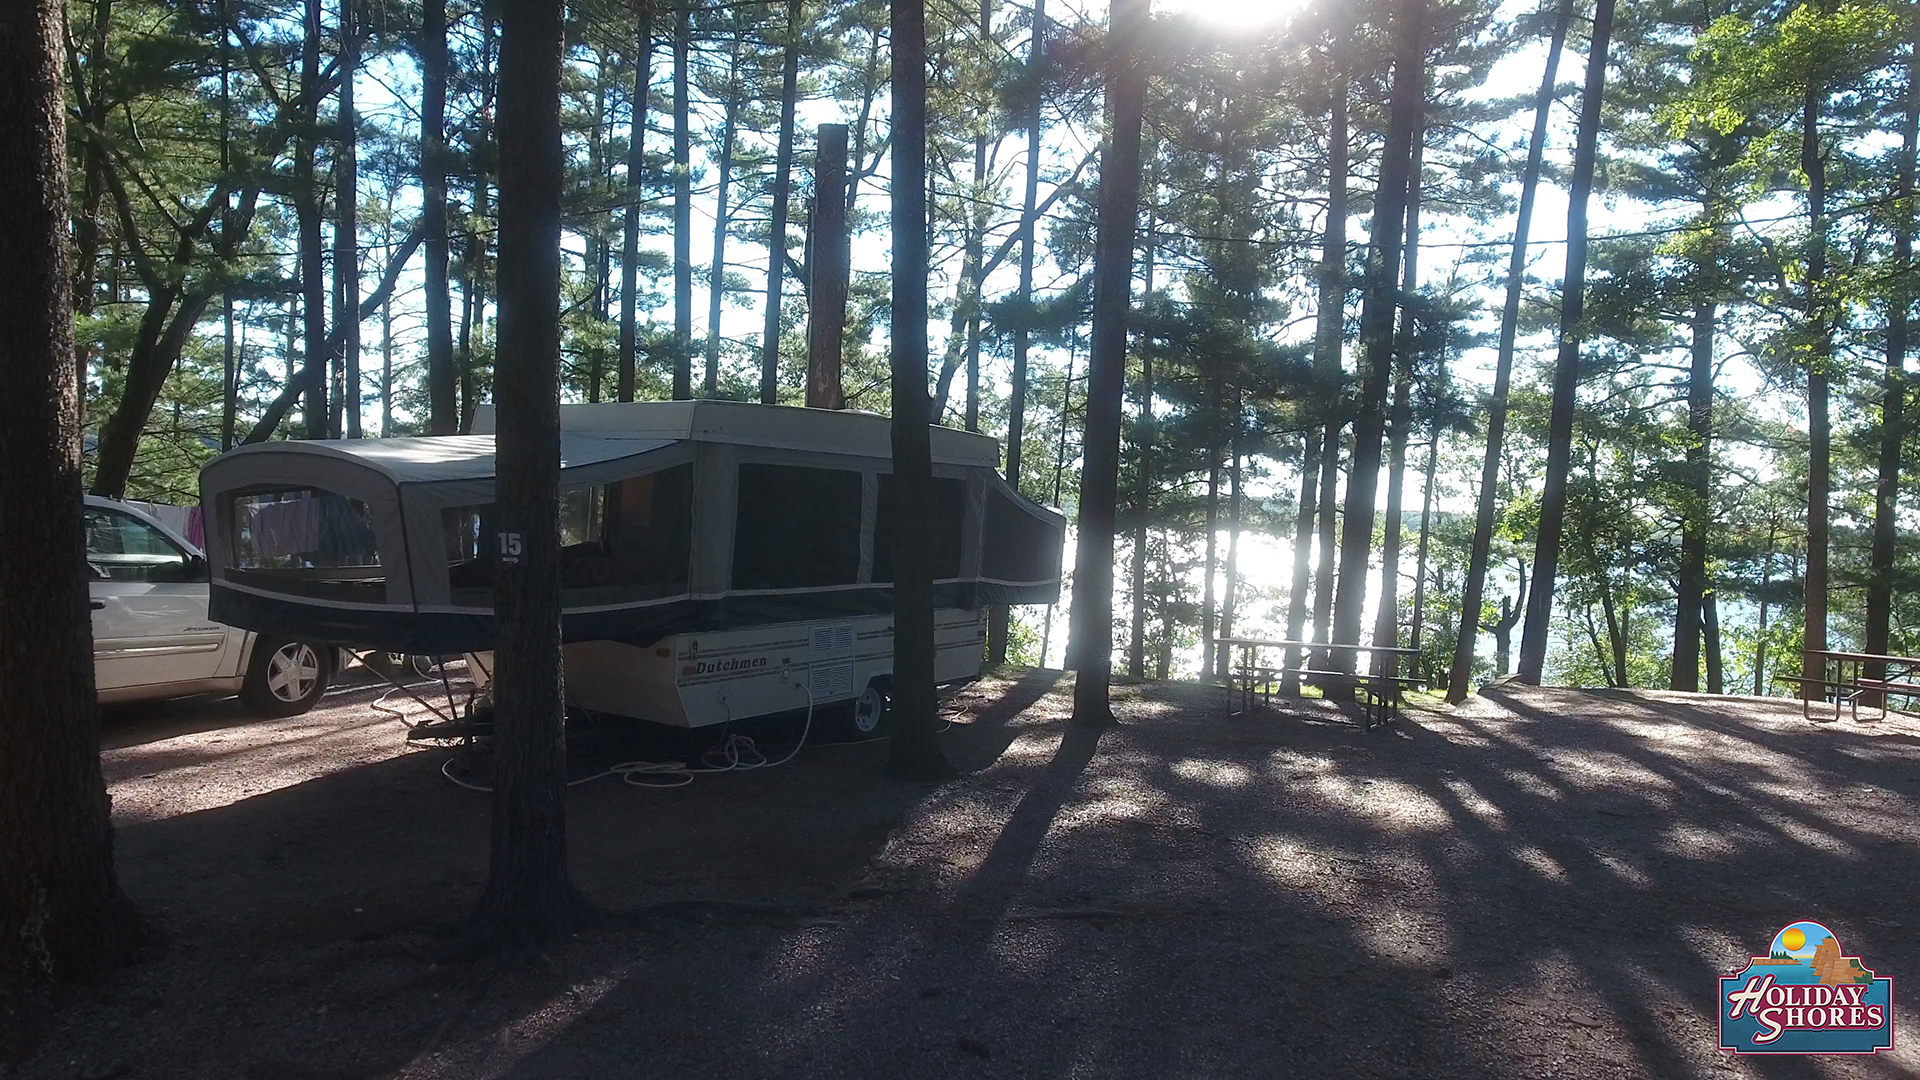 Holiday Shores River Campsite 3